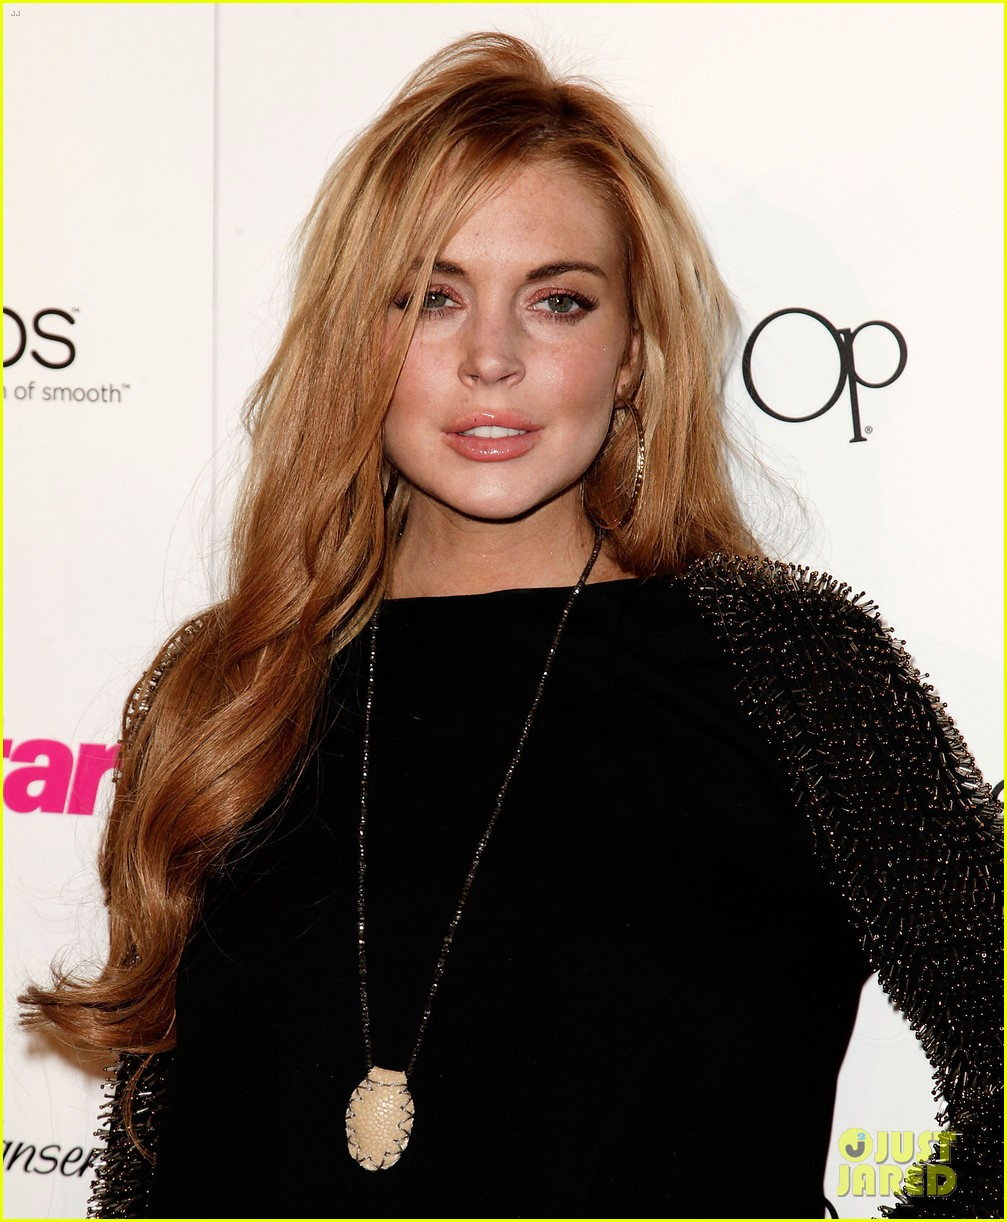 lindsay lohan star magazines all hollywood party 042653546